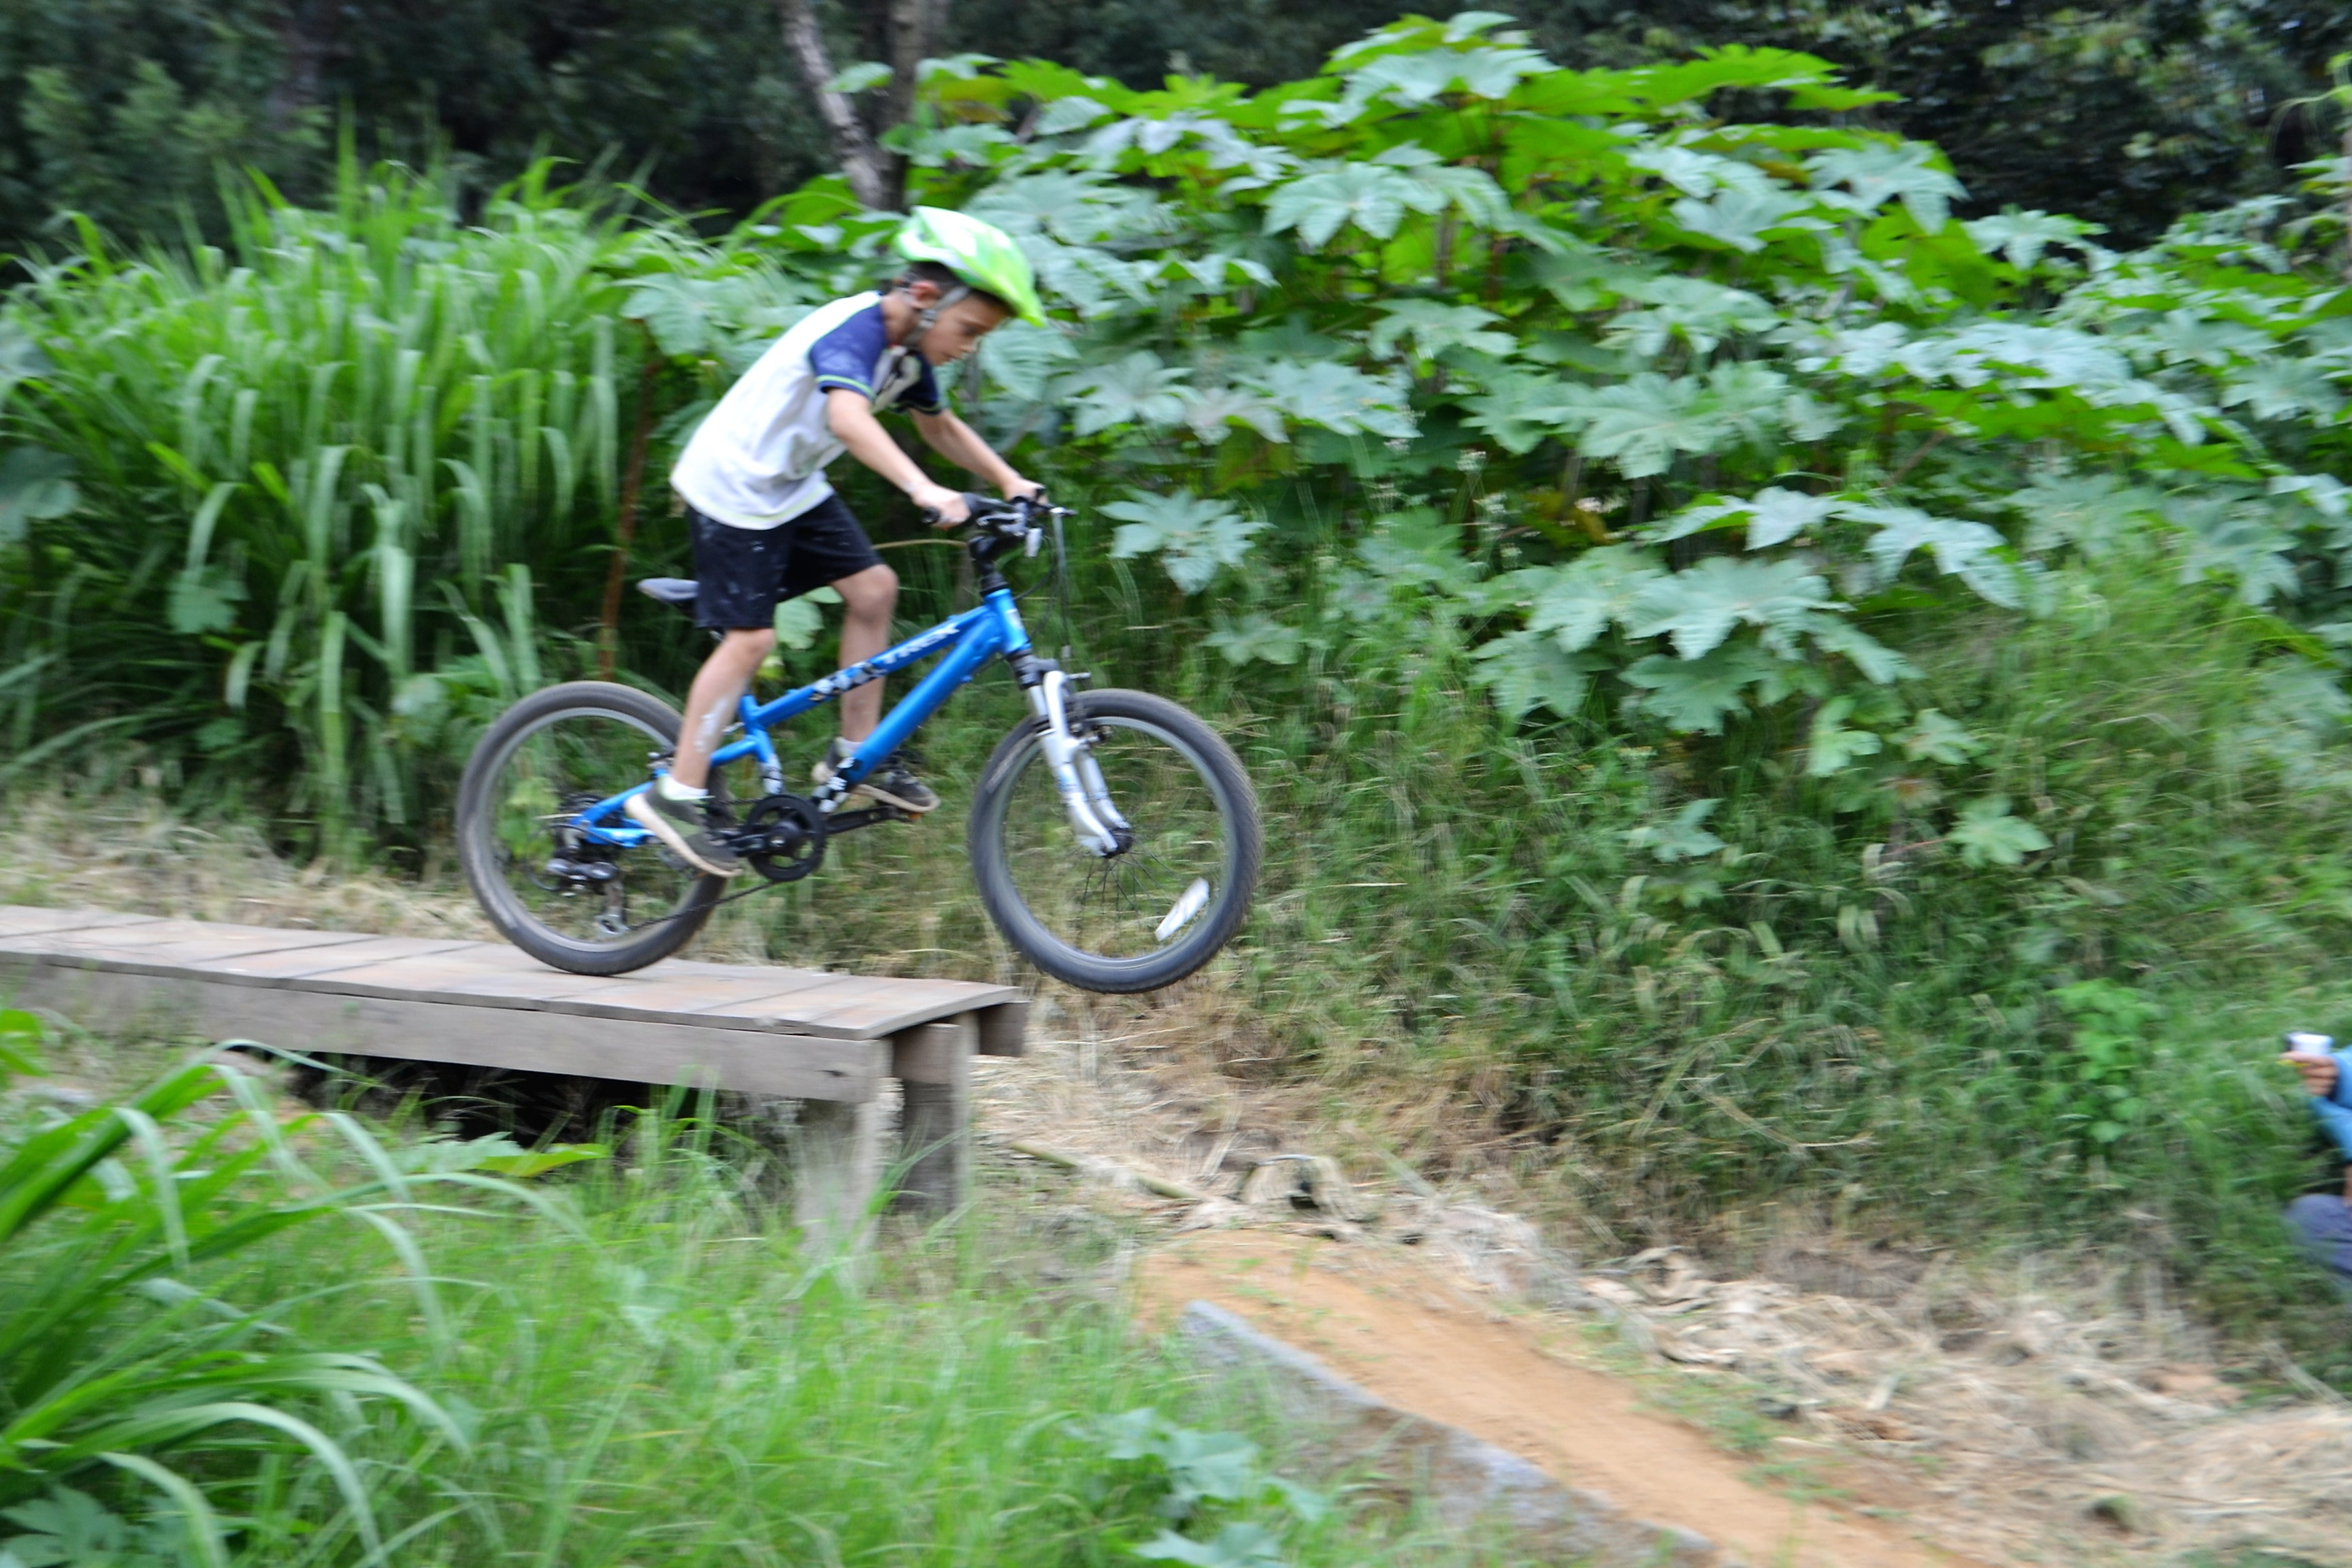 bike jumps, bike ramps, kids on bikes, local pump track, antigua guatemala, bike training